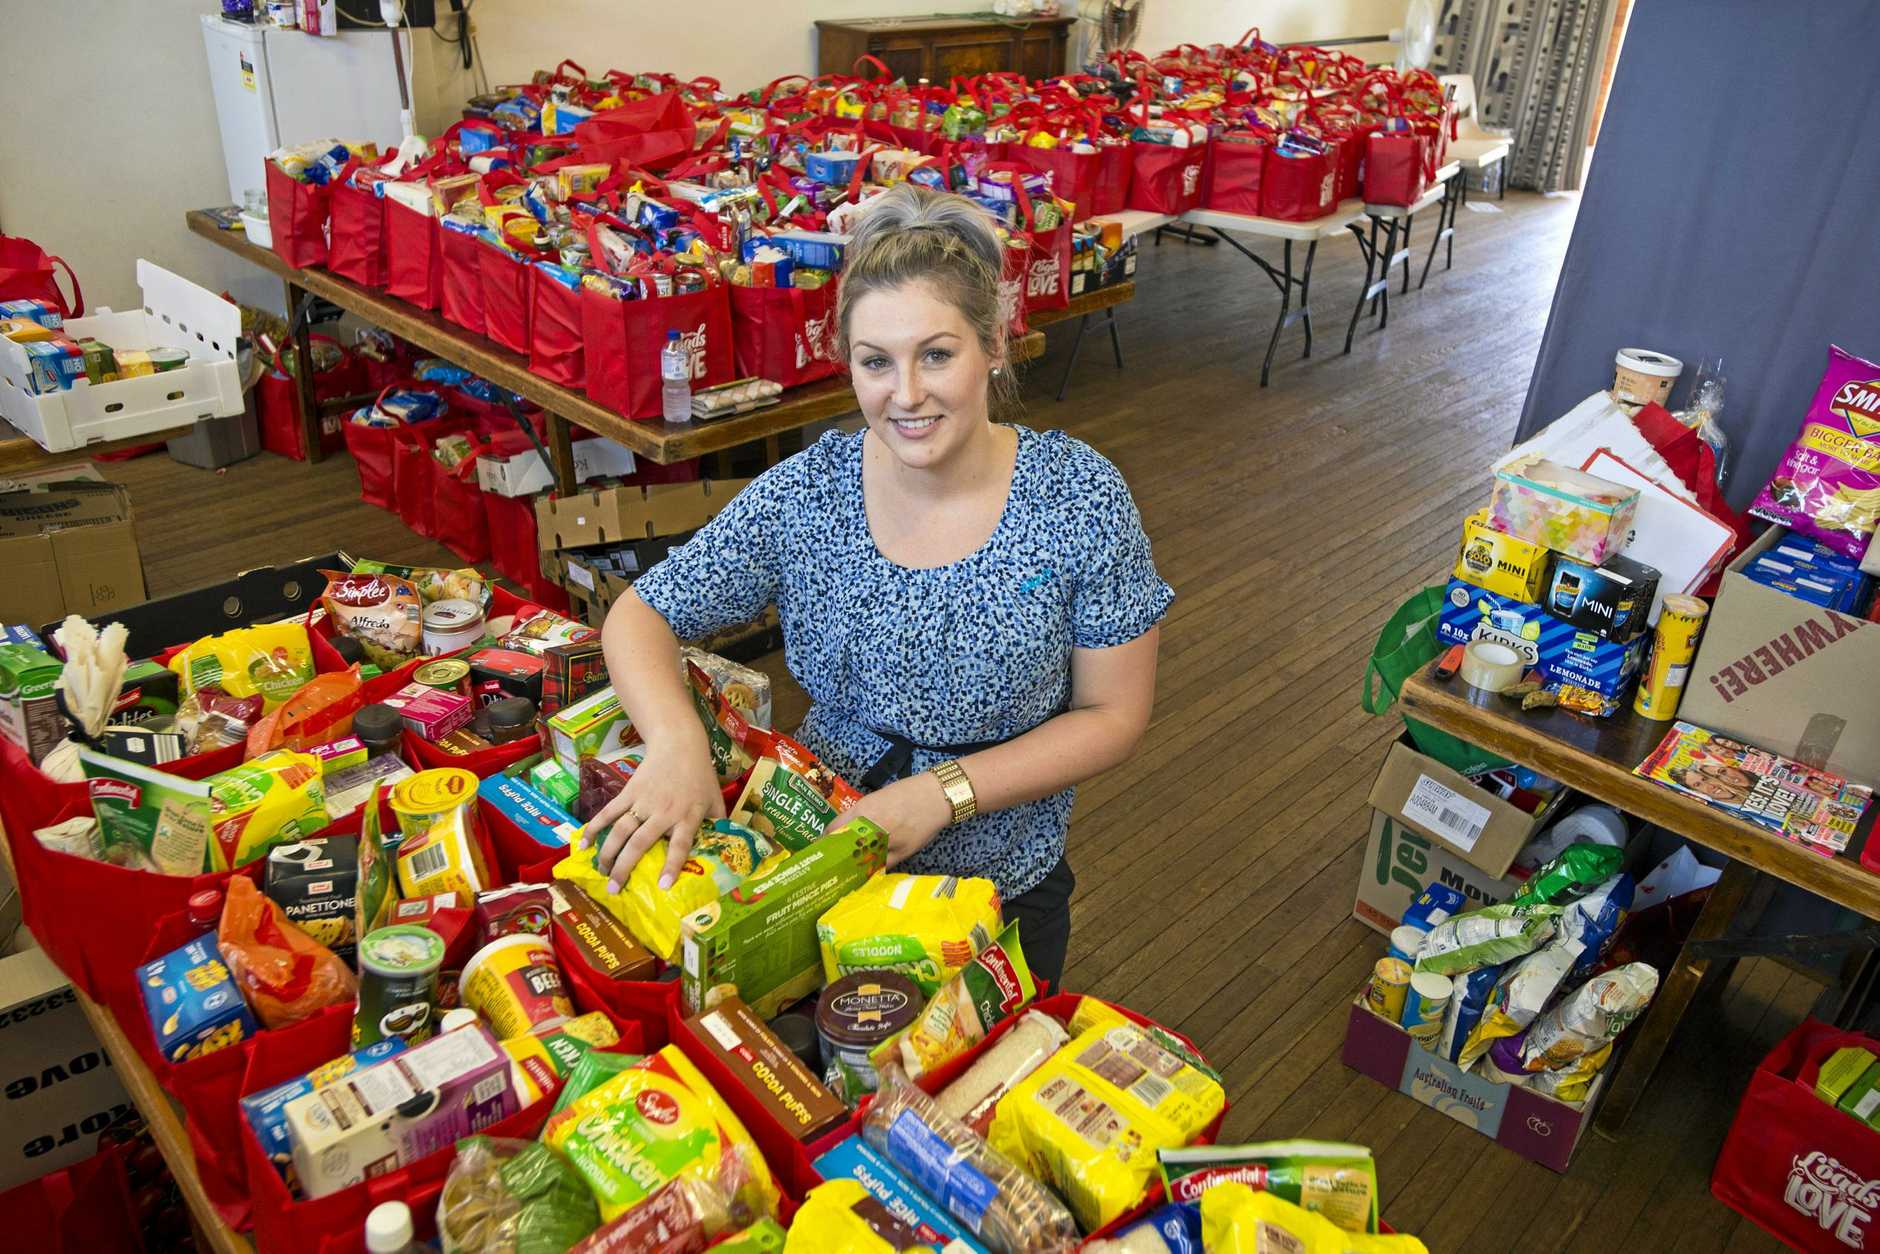 Volunteering for Lifeline from ANZ is Stephanie Thrupp working with Metro Care Loads of Love Appeal at the Lifeline distribution centre, Monday, December 18, 2017.